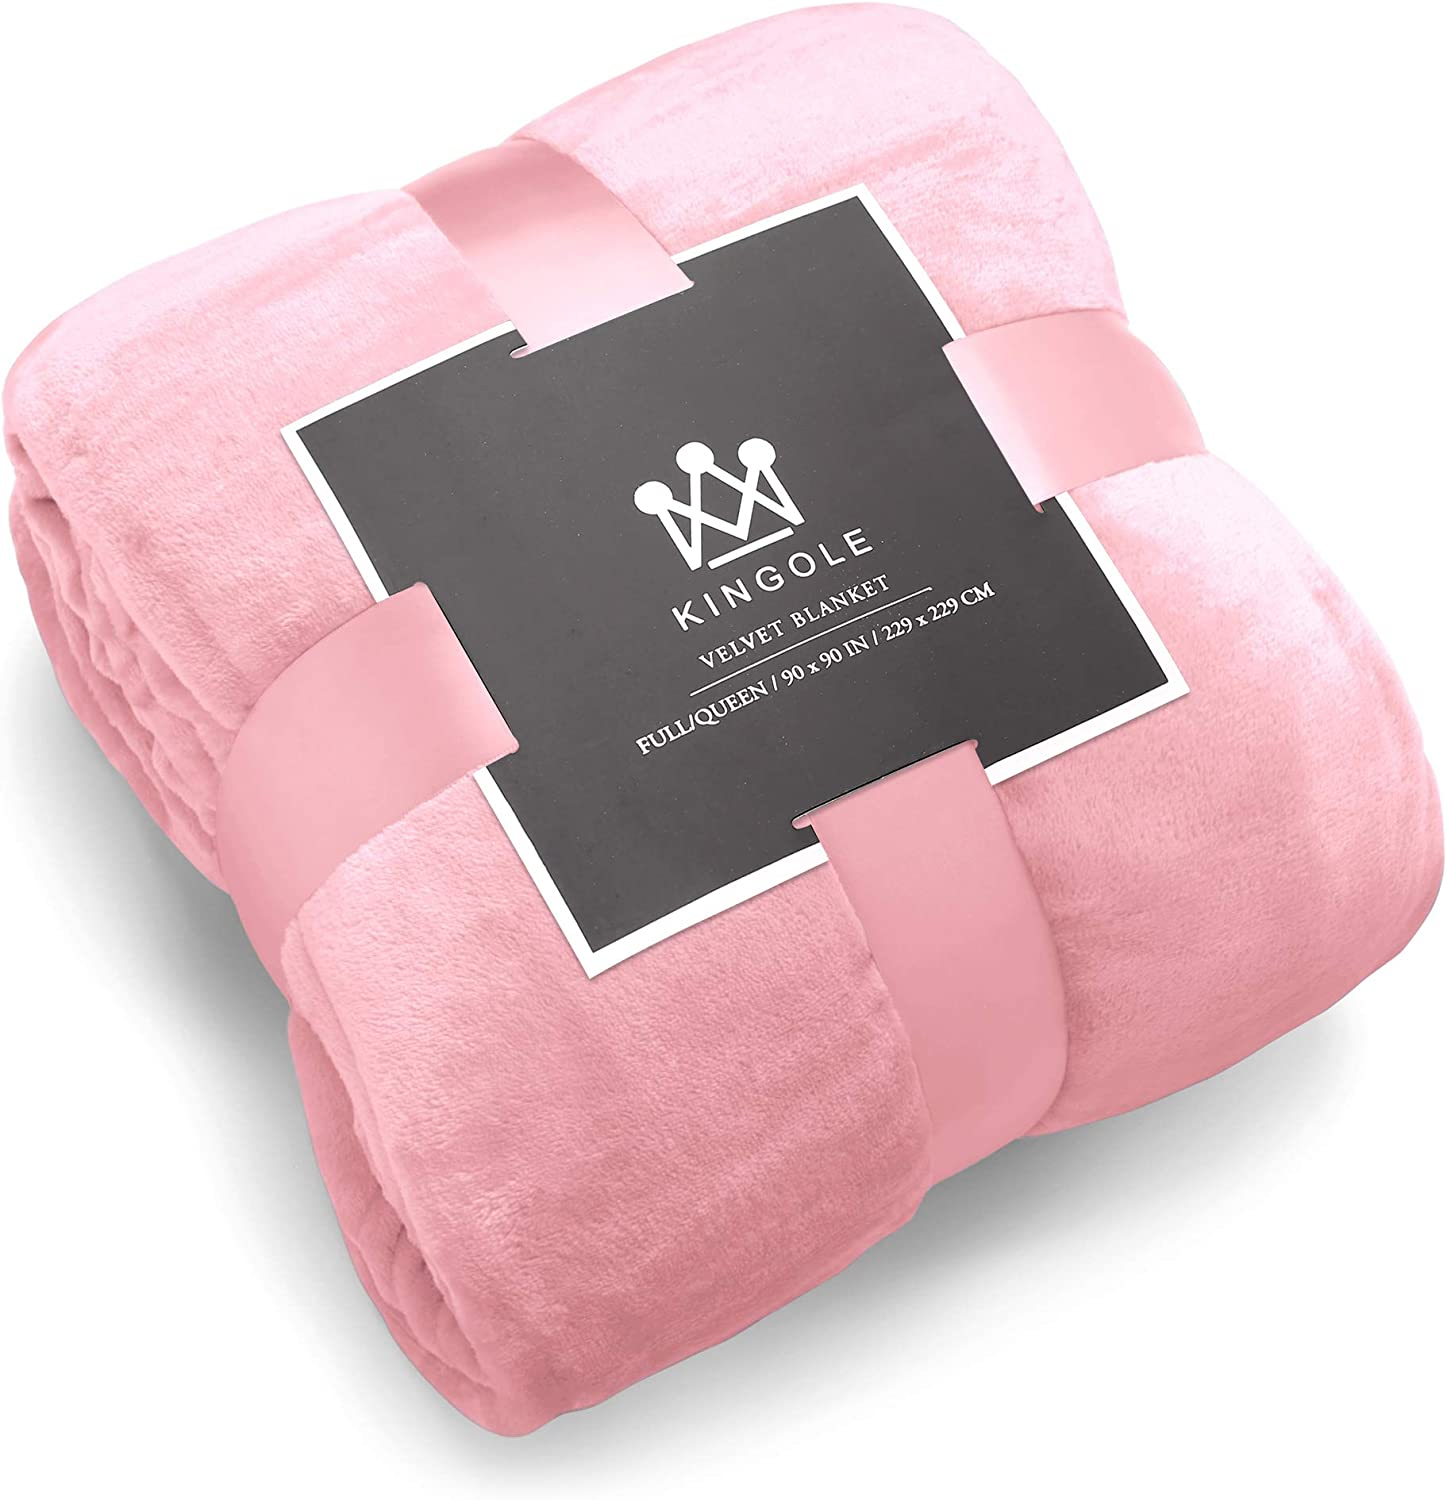 Kingole Flannel Fleece Microfiber Throw Blanket, Luxury Cherry Blossom Pink Queen Size Lightweight Cozy Couch Bed Super Soft and Warm Plush Solid Color 350GSM (90 x 90 inches)